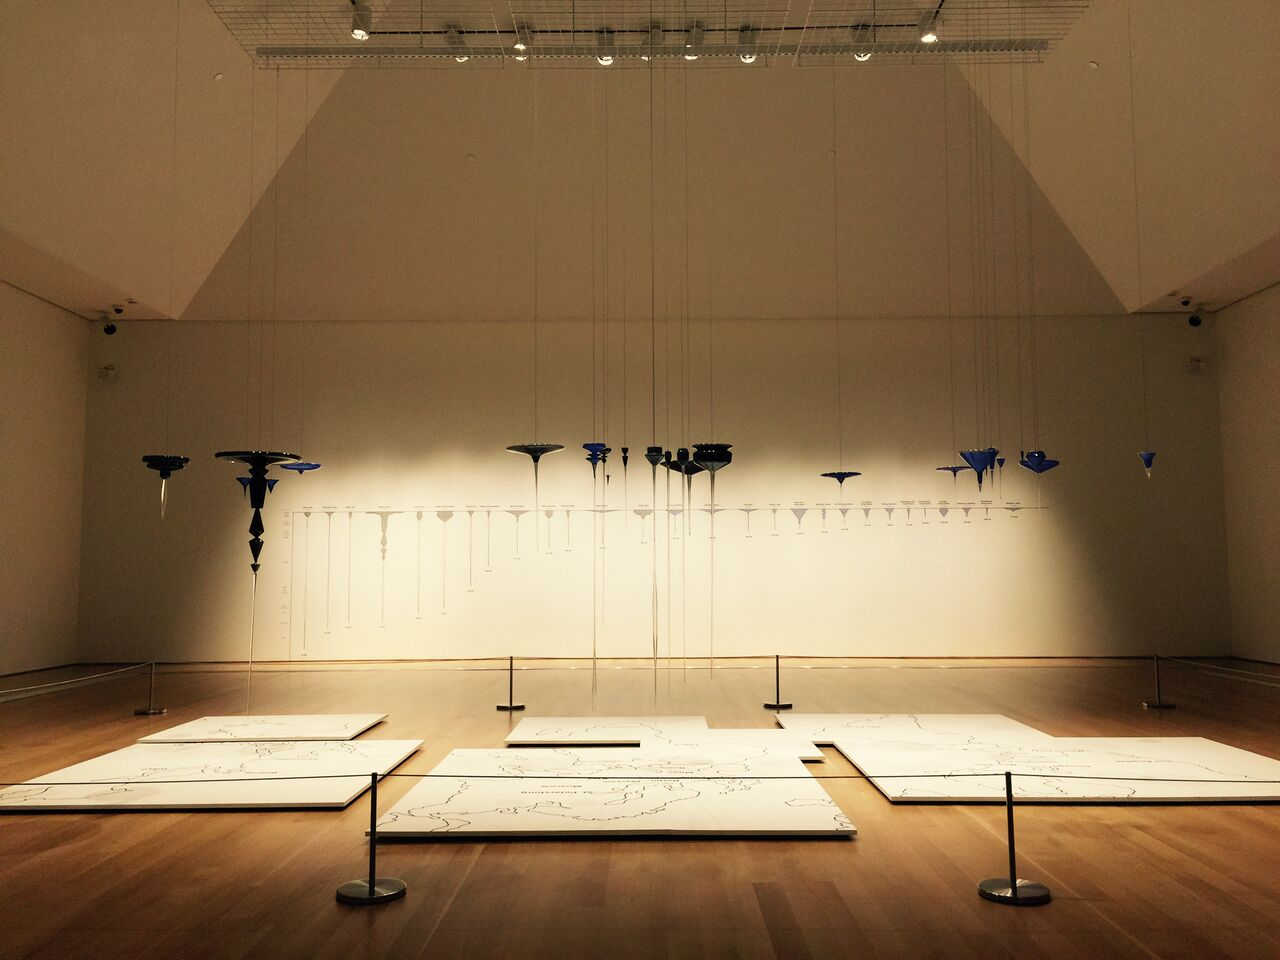 Installation view of 'Norwood Viviano: Global Cities' at the Grand Rapids Art Museum (all photos by the author for Hyperallergic)